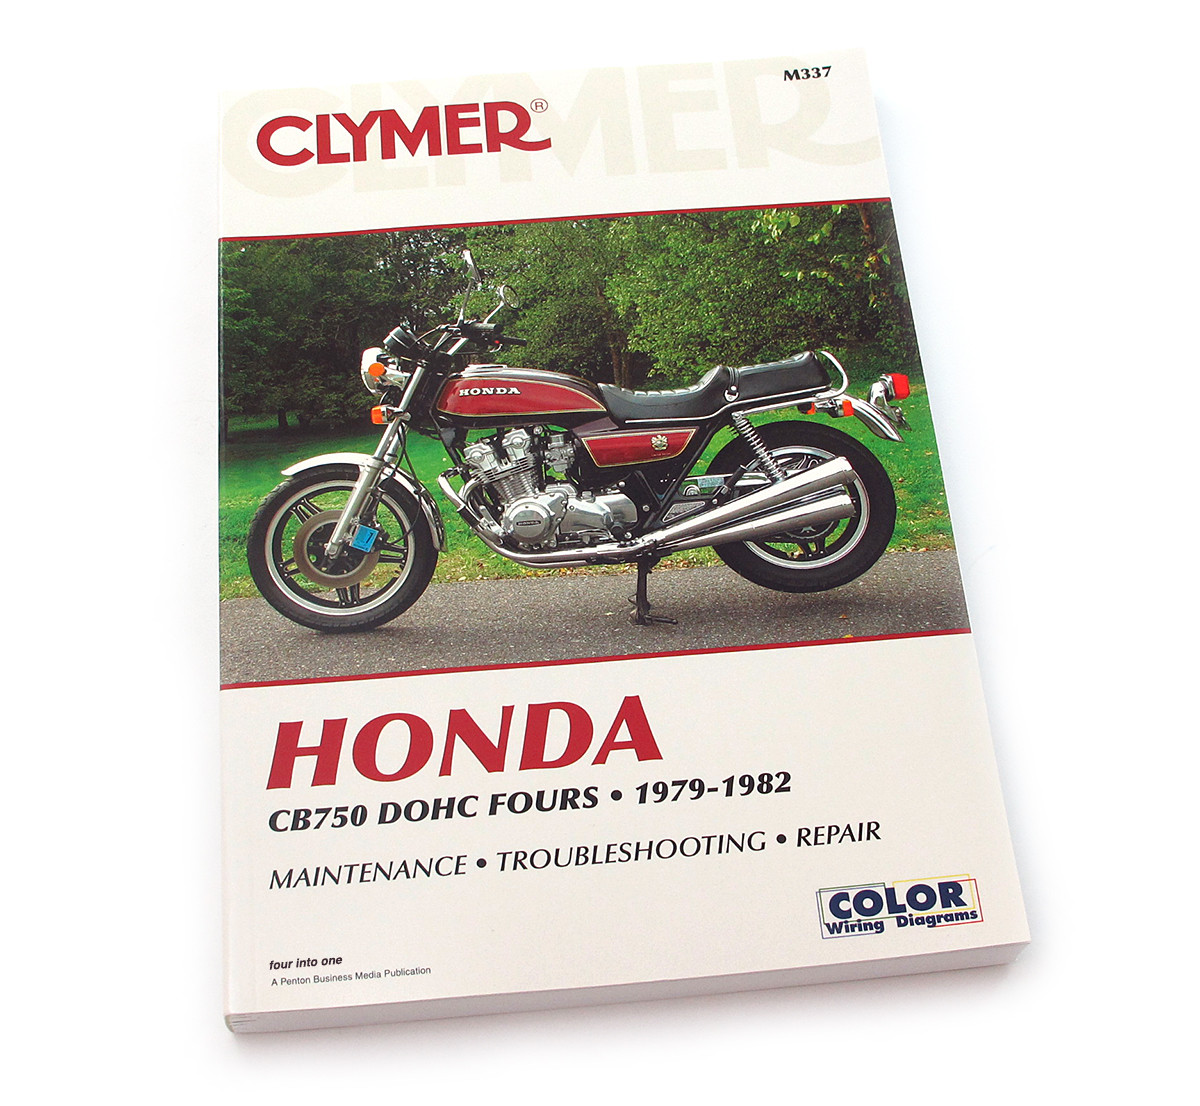 Incredible Clymer Manual Honda Cb750 Dohc Fours 1979 1982 Wiring Digital Resources Sapredefiancerspsorg